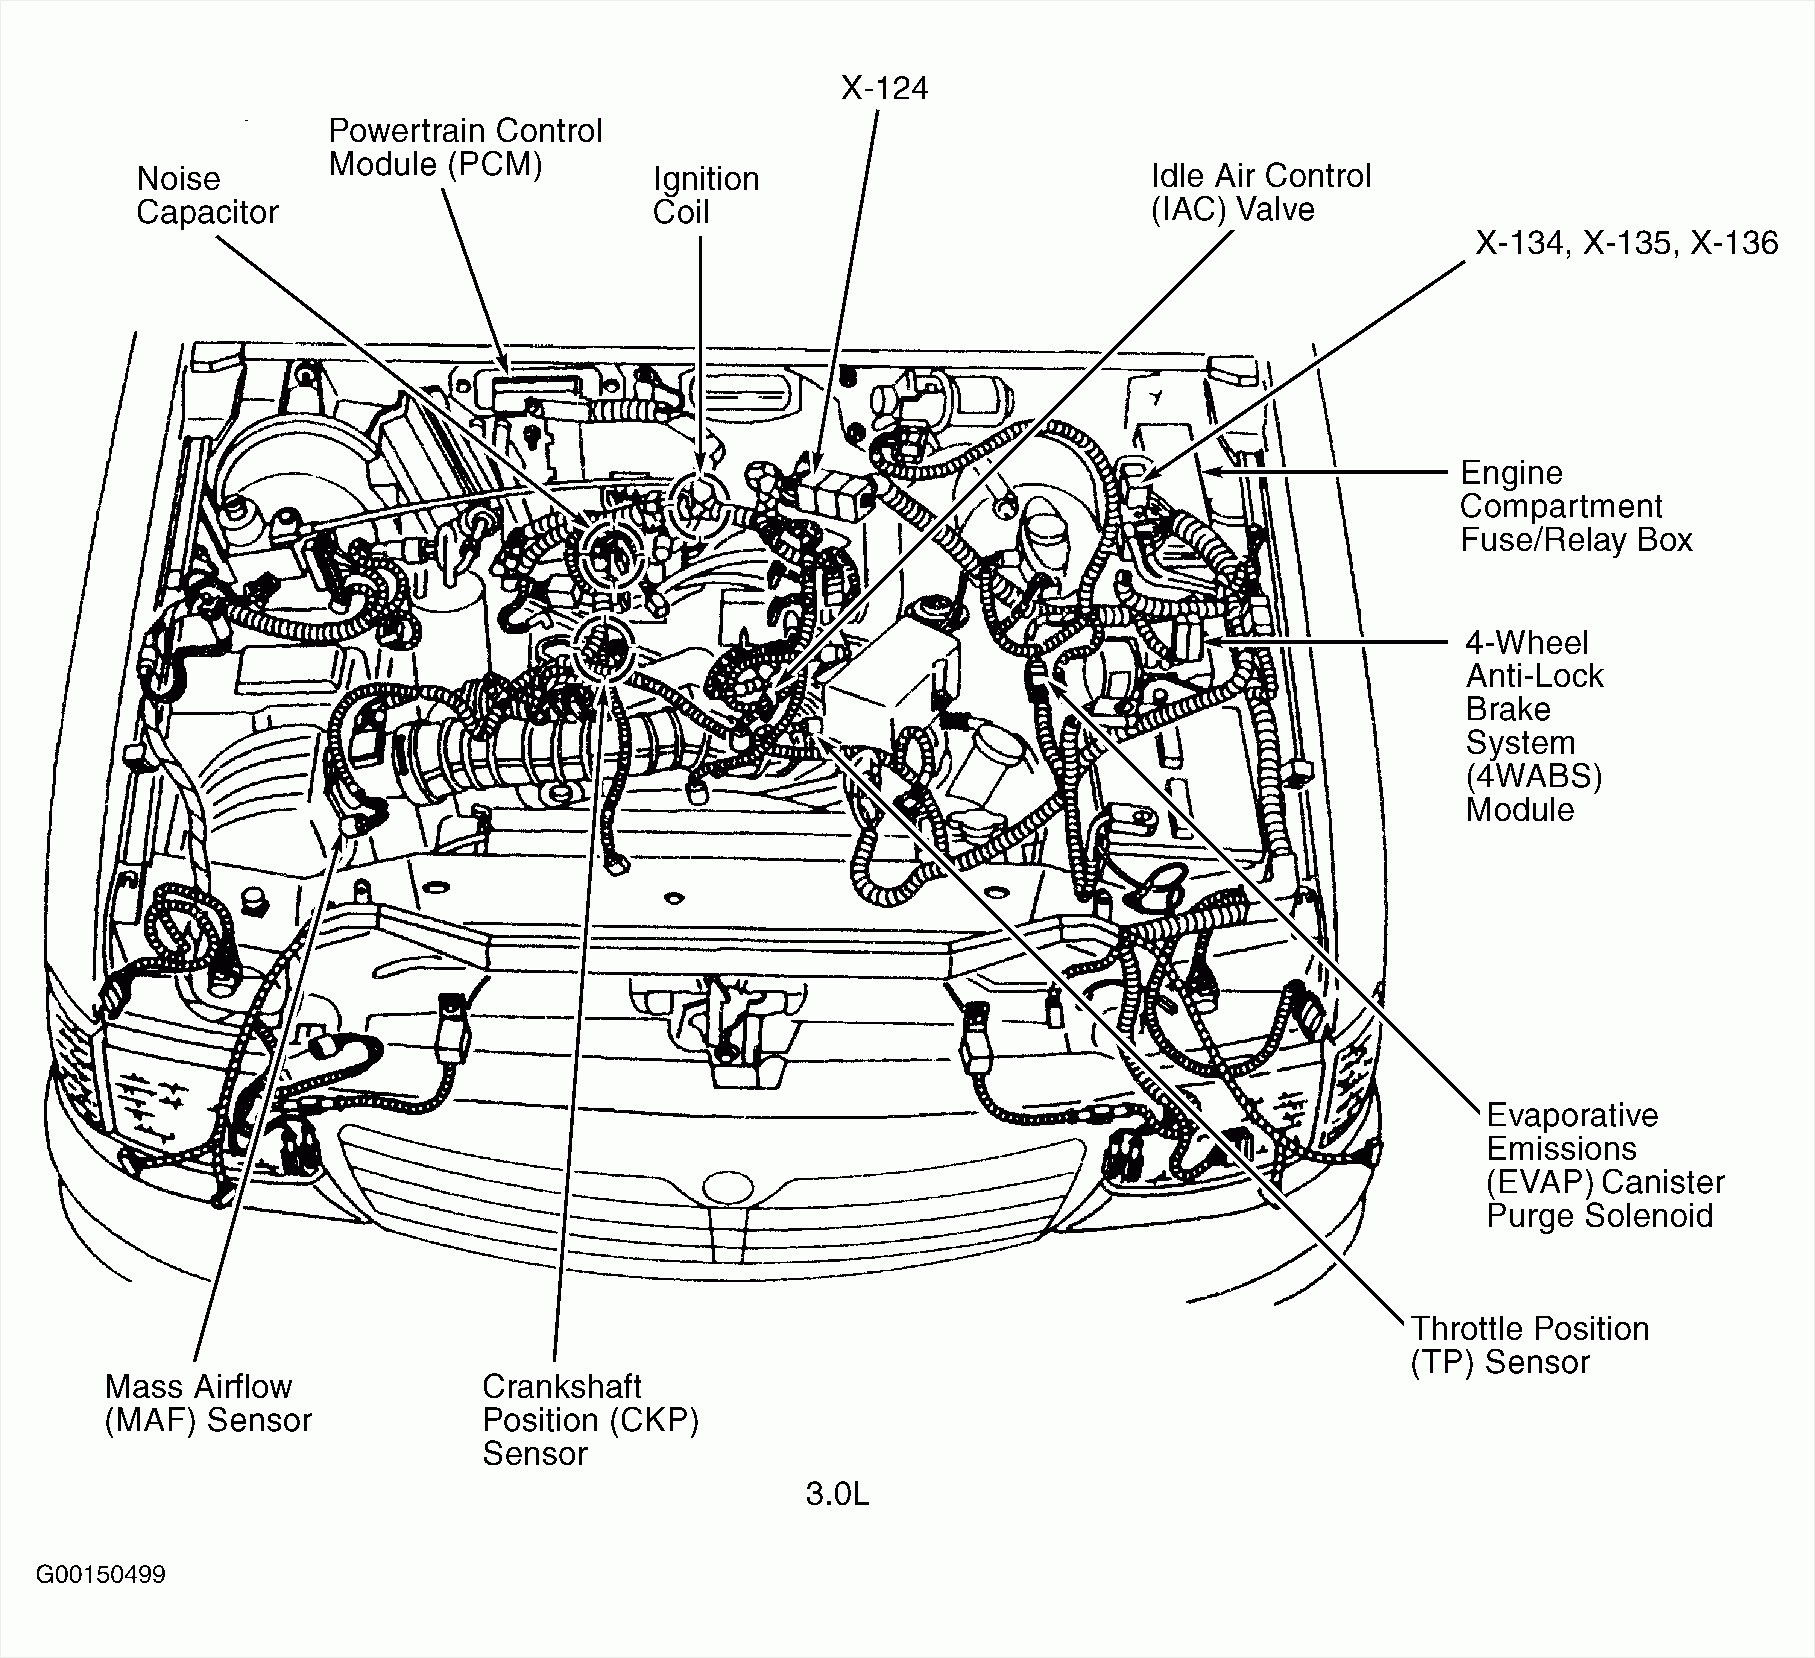 ford 3 3l engine diagram 8 spikeballclubkoeln de \u2022ford 3 3l engine diagram 1 ulrich temme de u2022 rh 1 ulrich temme de dodge